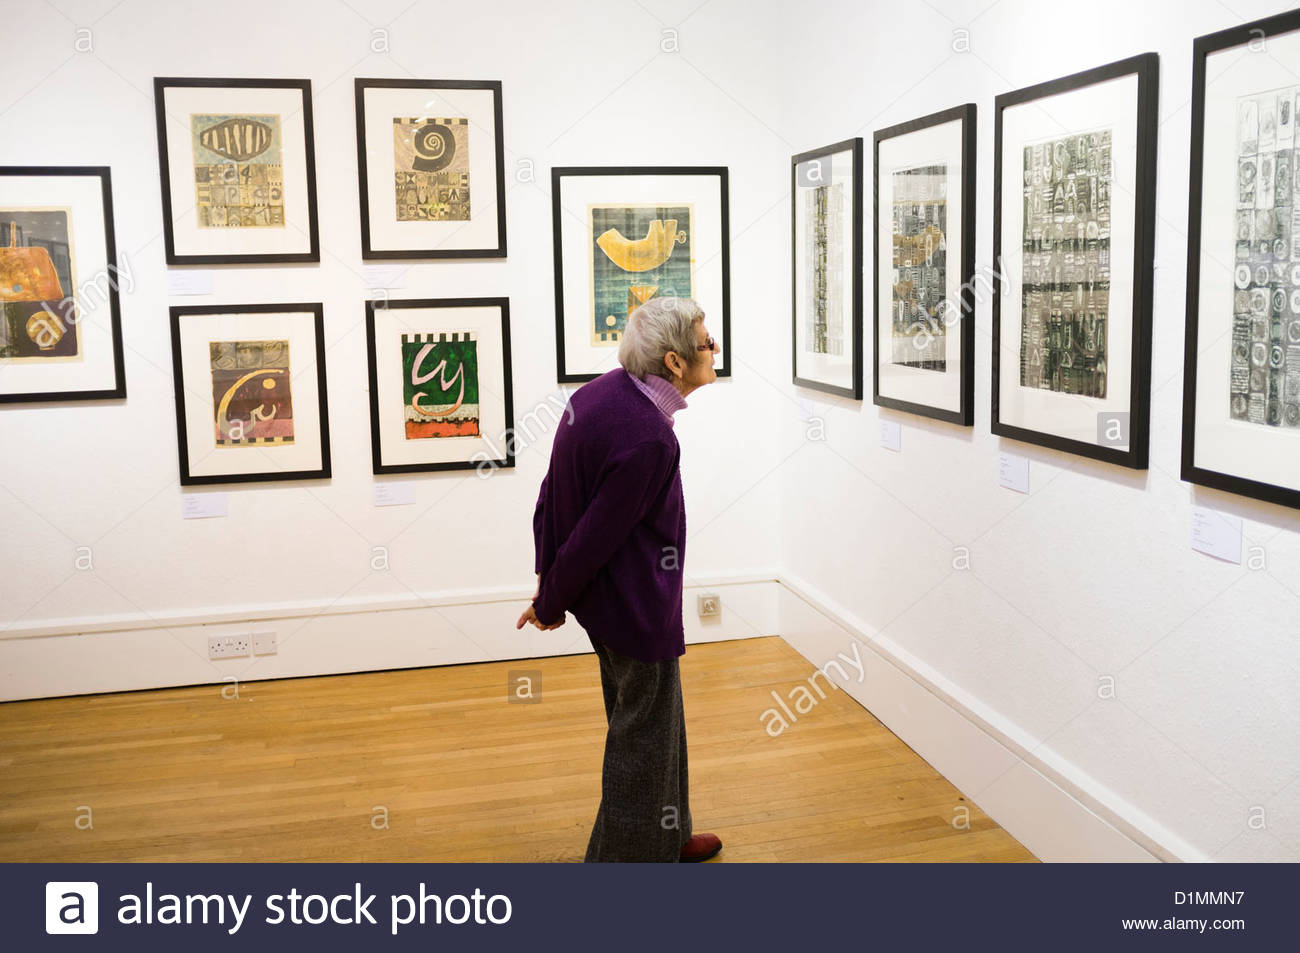 MOMA Wales Mid-Wales, museum of modern art machynlleth powys interior exhibition of ...